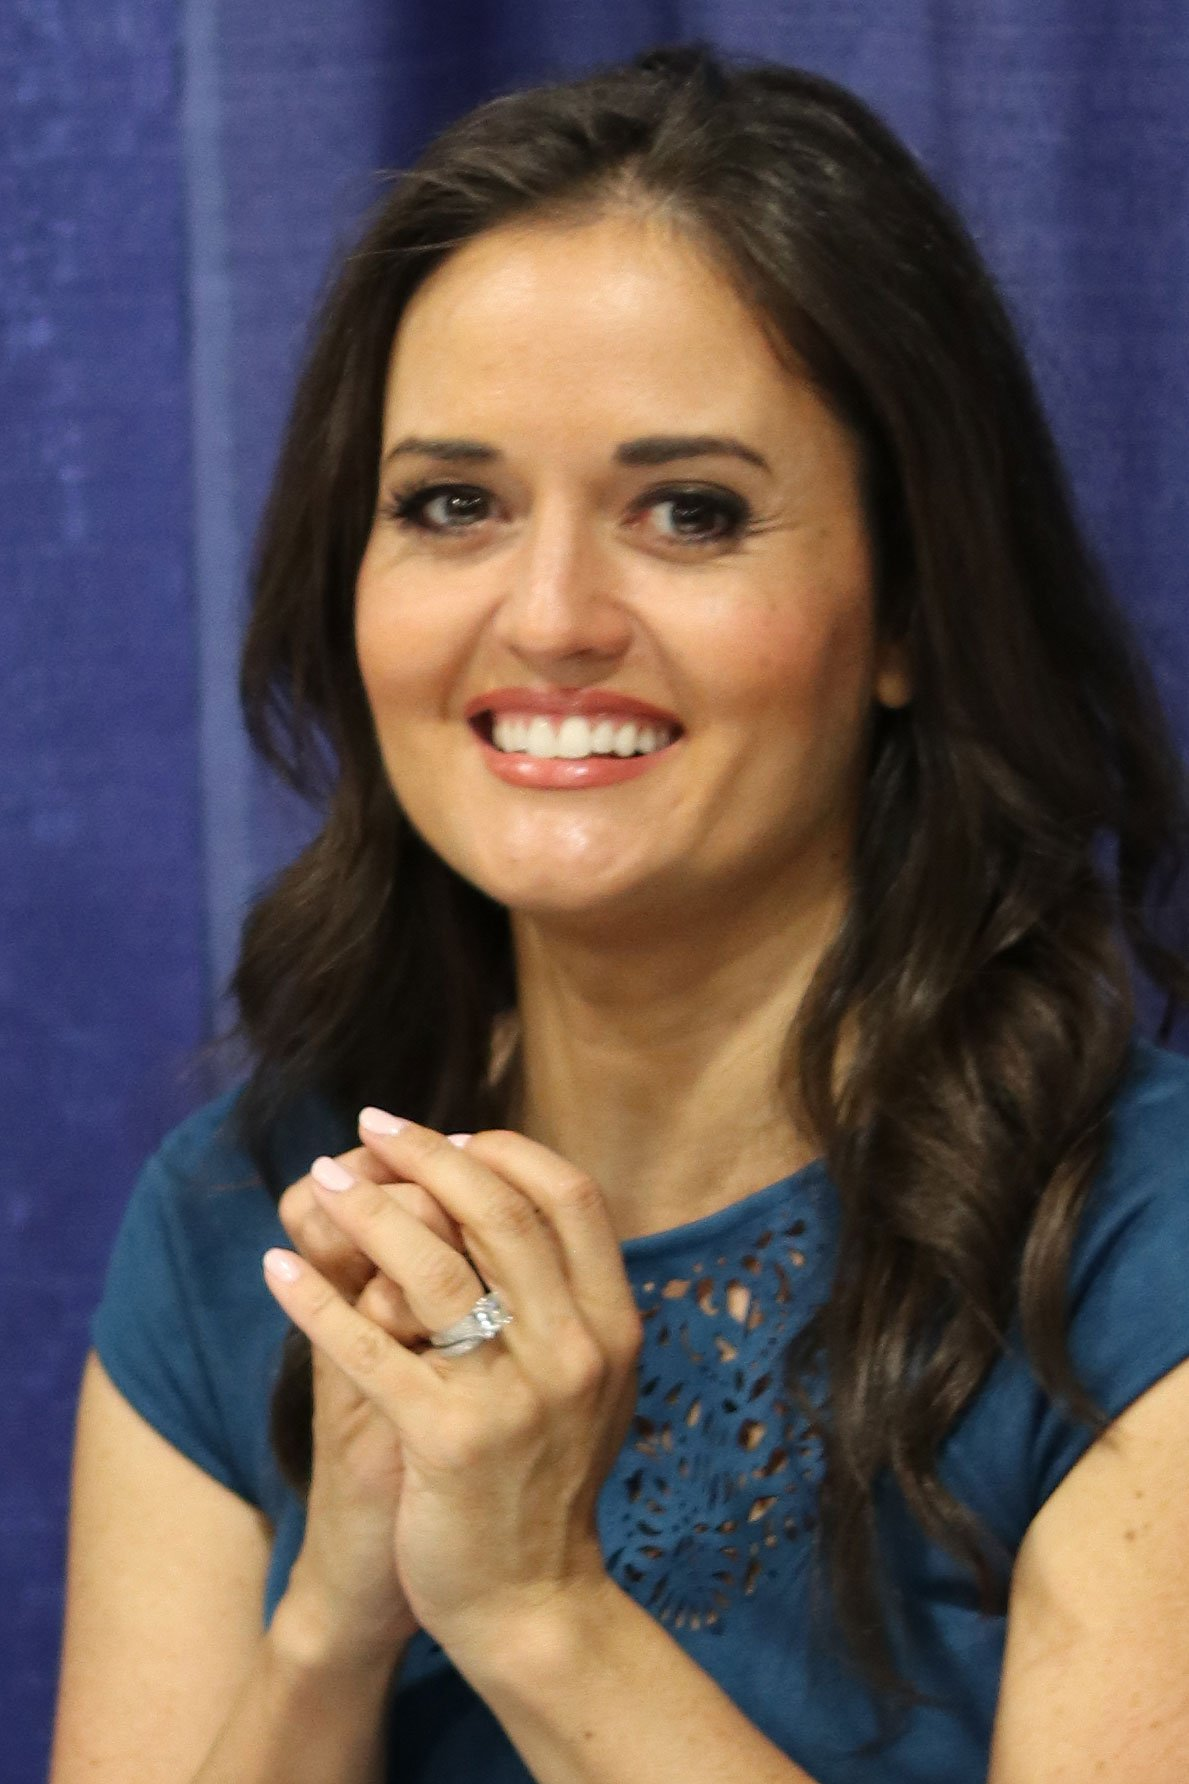 Danica McKellar at the 2018 United States National Book Festival | Source: Wikimedia Commons